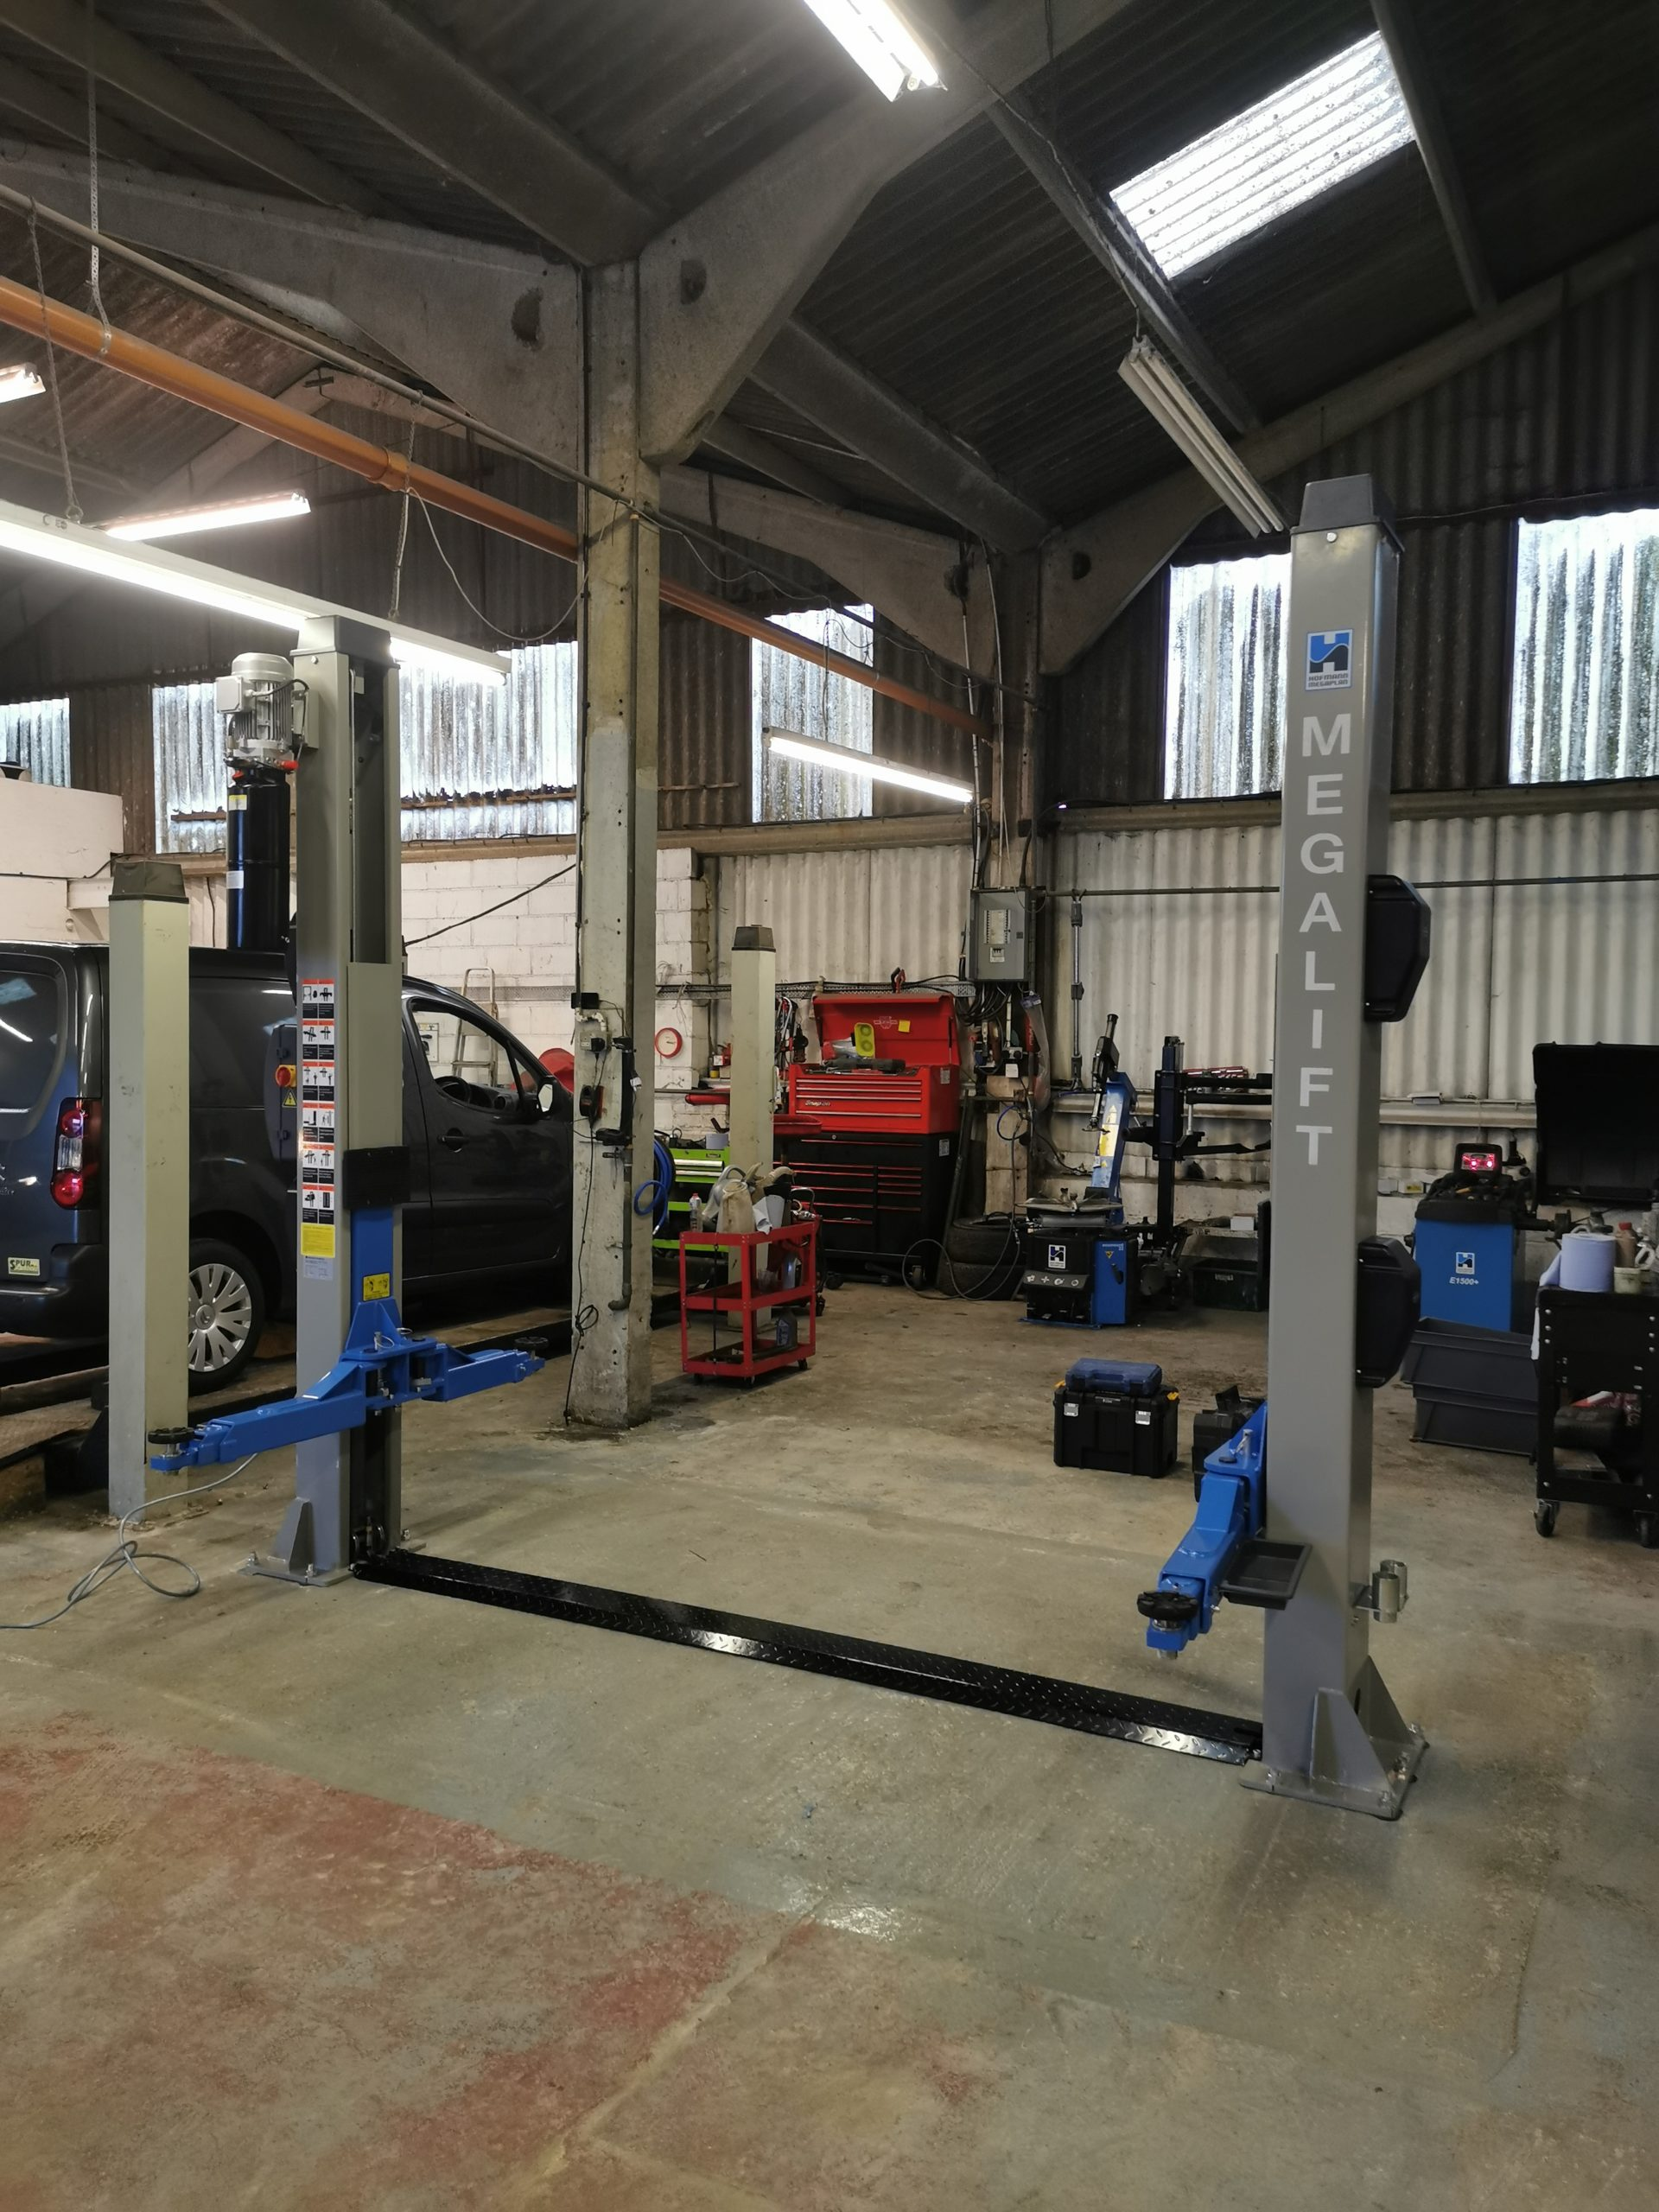 Things don't always go to plan - this amazing install of the megalift 4000-3 Two Post Lift, was a little trickier than we first expected at AB Autos in Arundel.